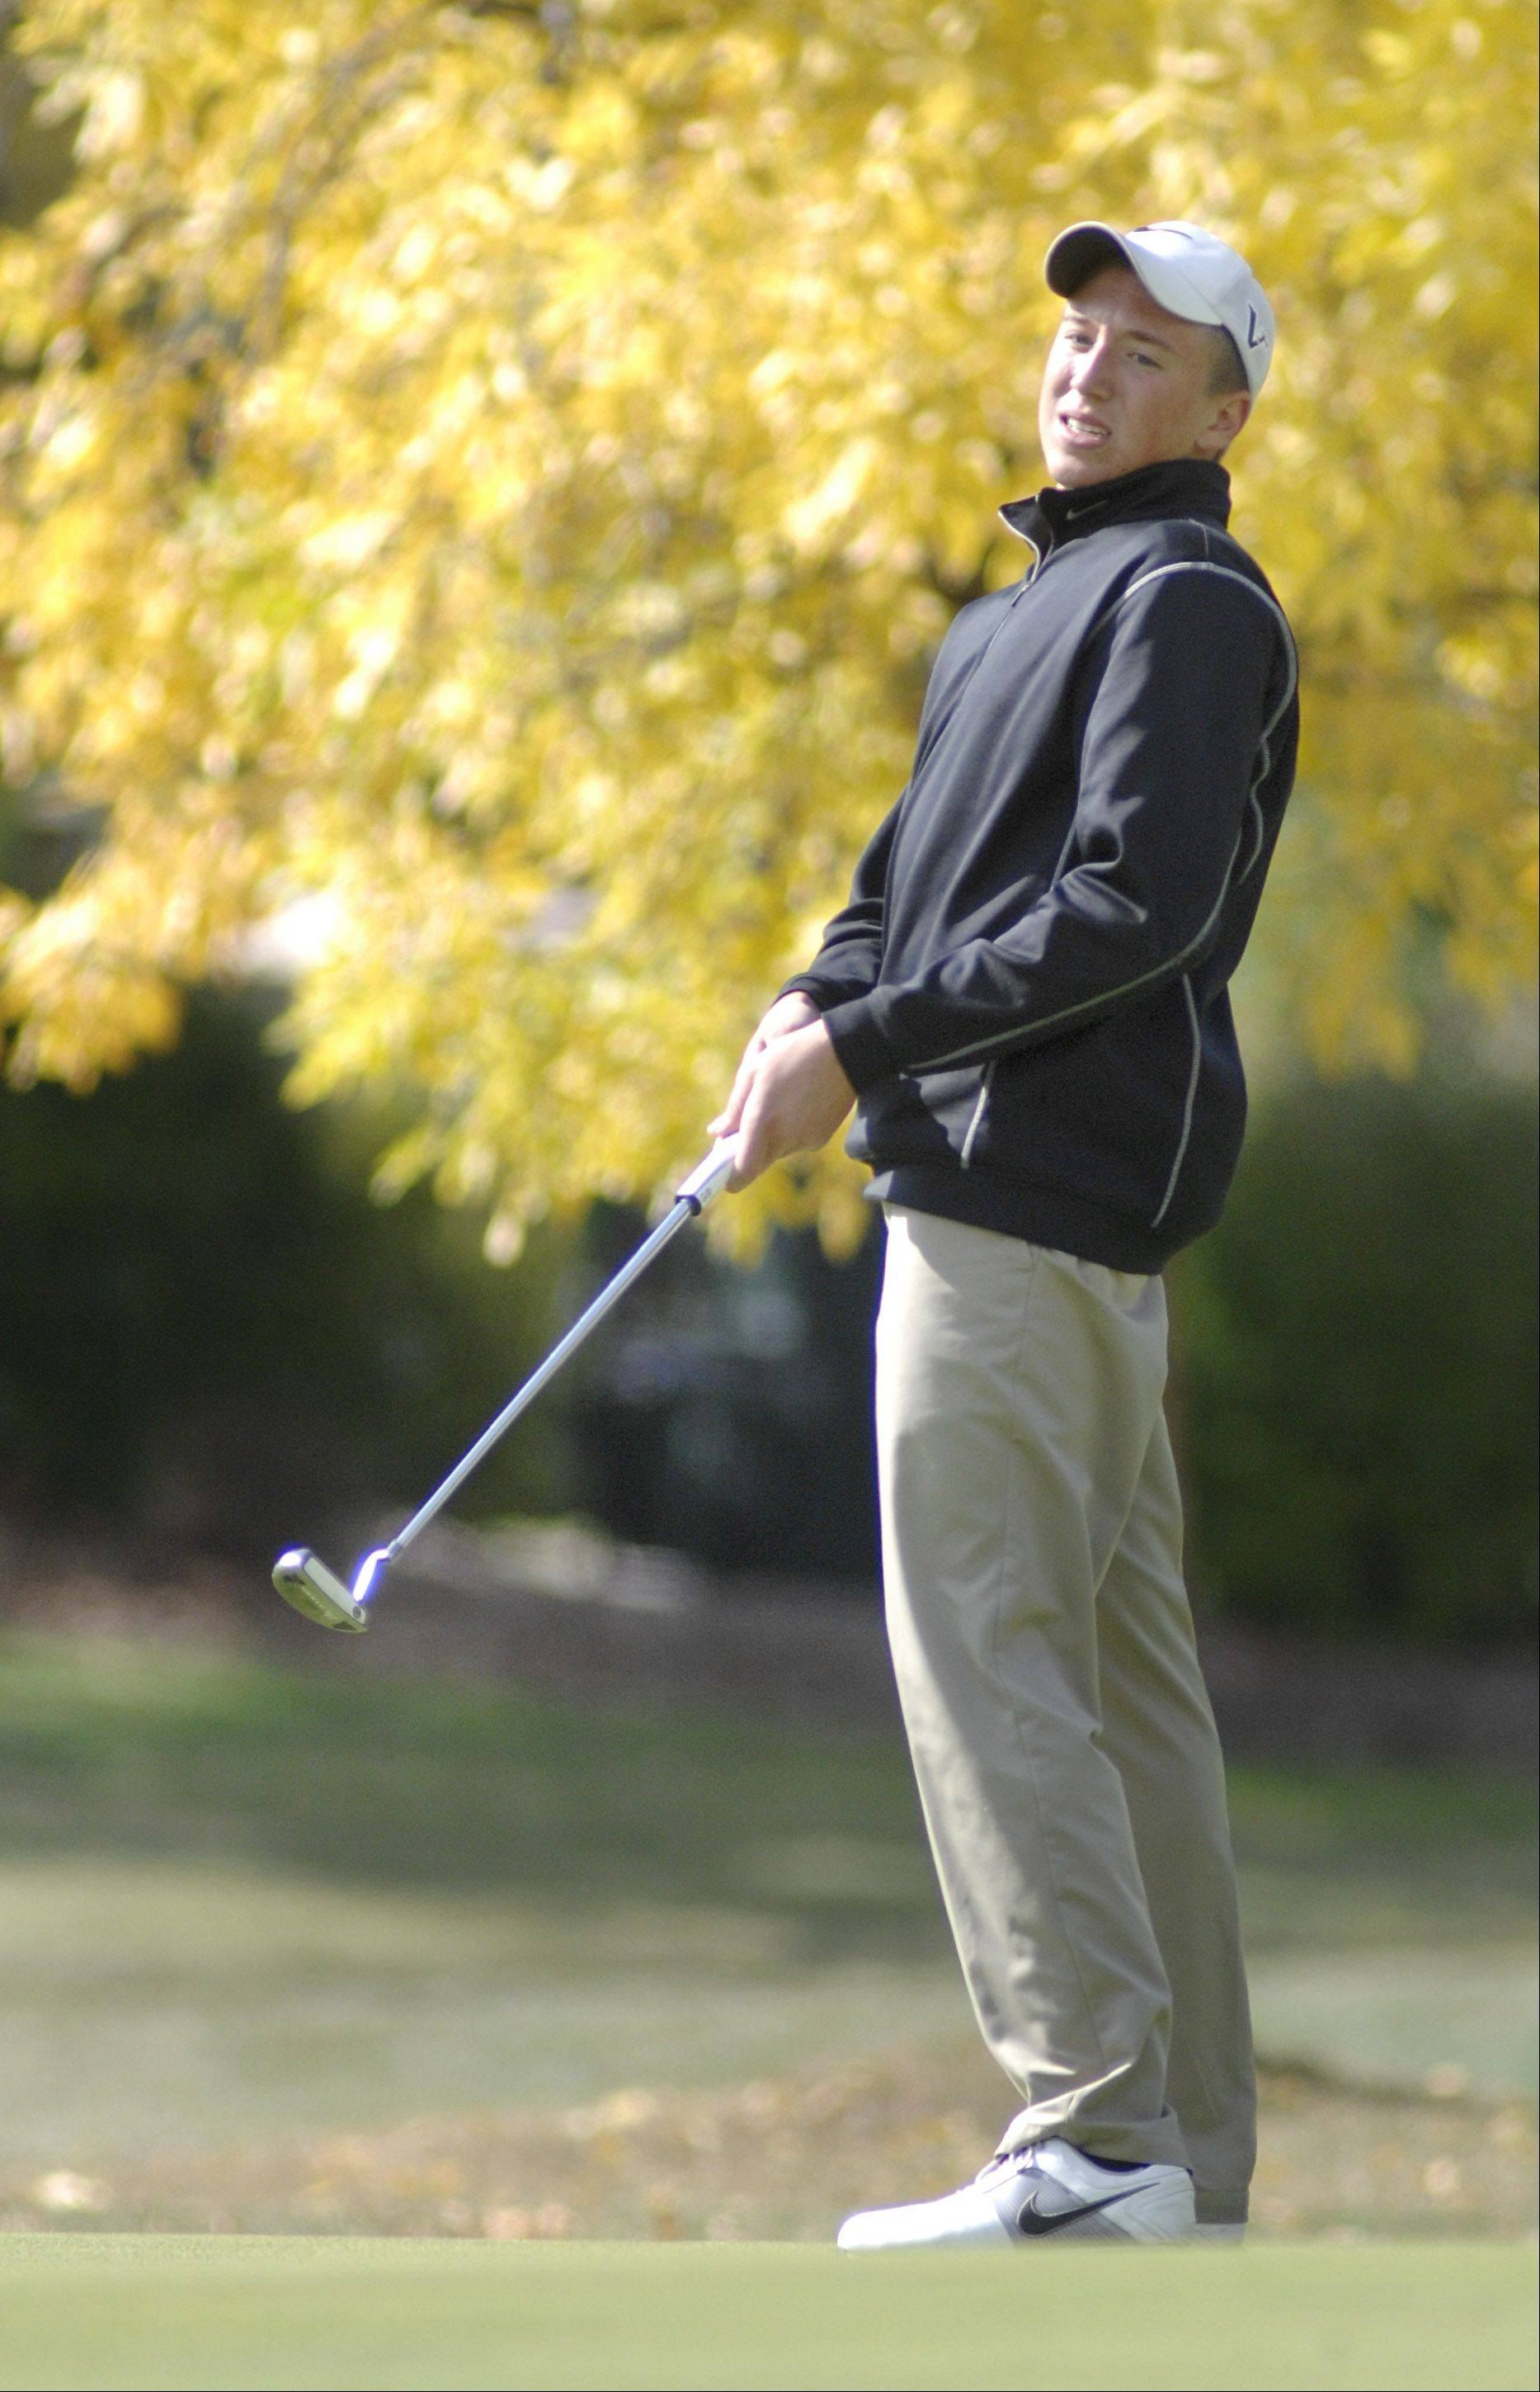 Dundee-Crown's Brenton Barrett leans back as his ball skims the hole on the eleventh green in the Fox Valley Conference tournament at Crystal Woods Golf Course in Woodstock on Thursday, September 27.